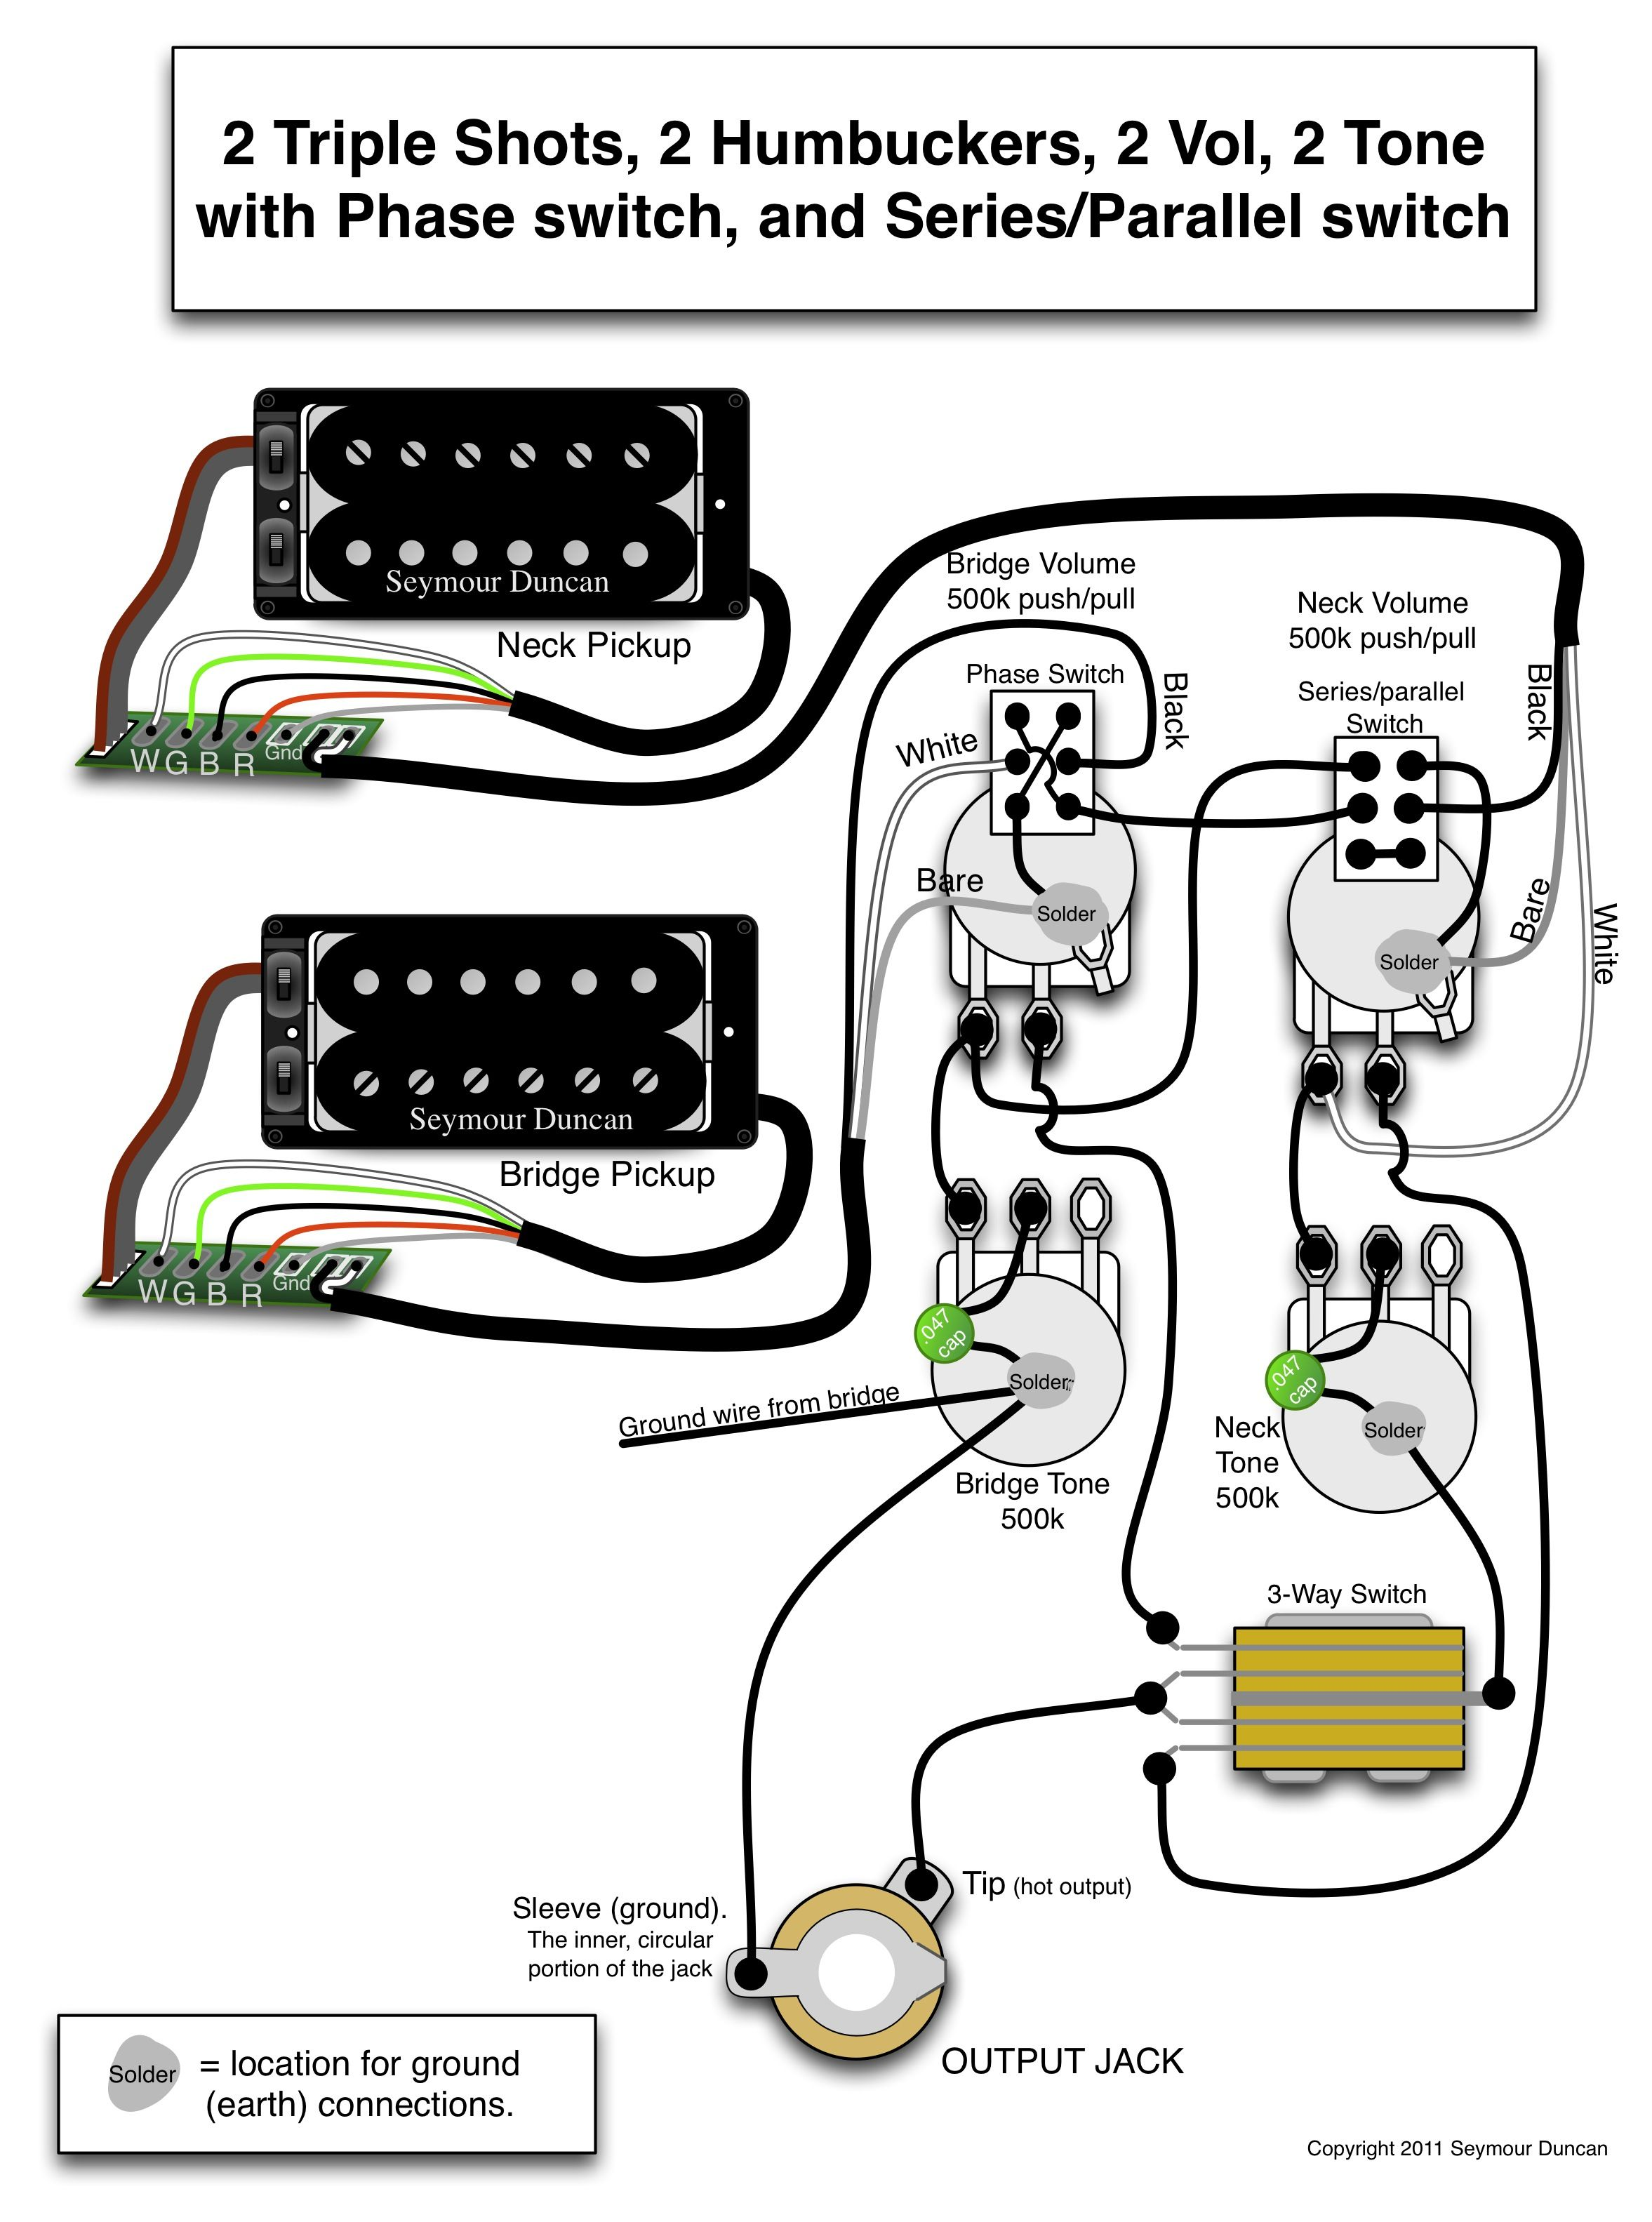 duncan wiring diagram 2 triple shots 2 humbuckers 2 volume 2